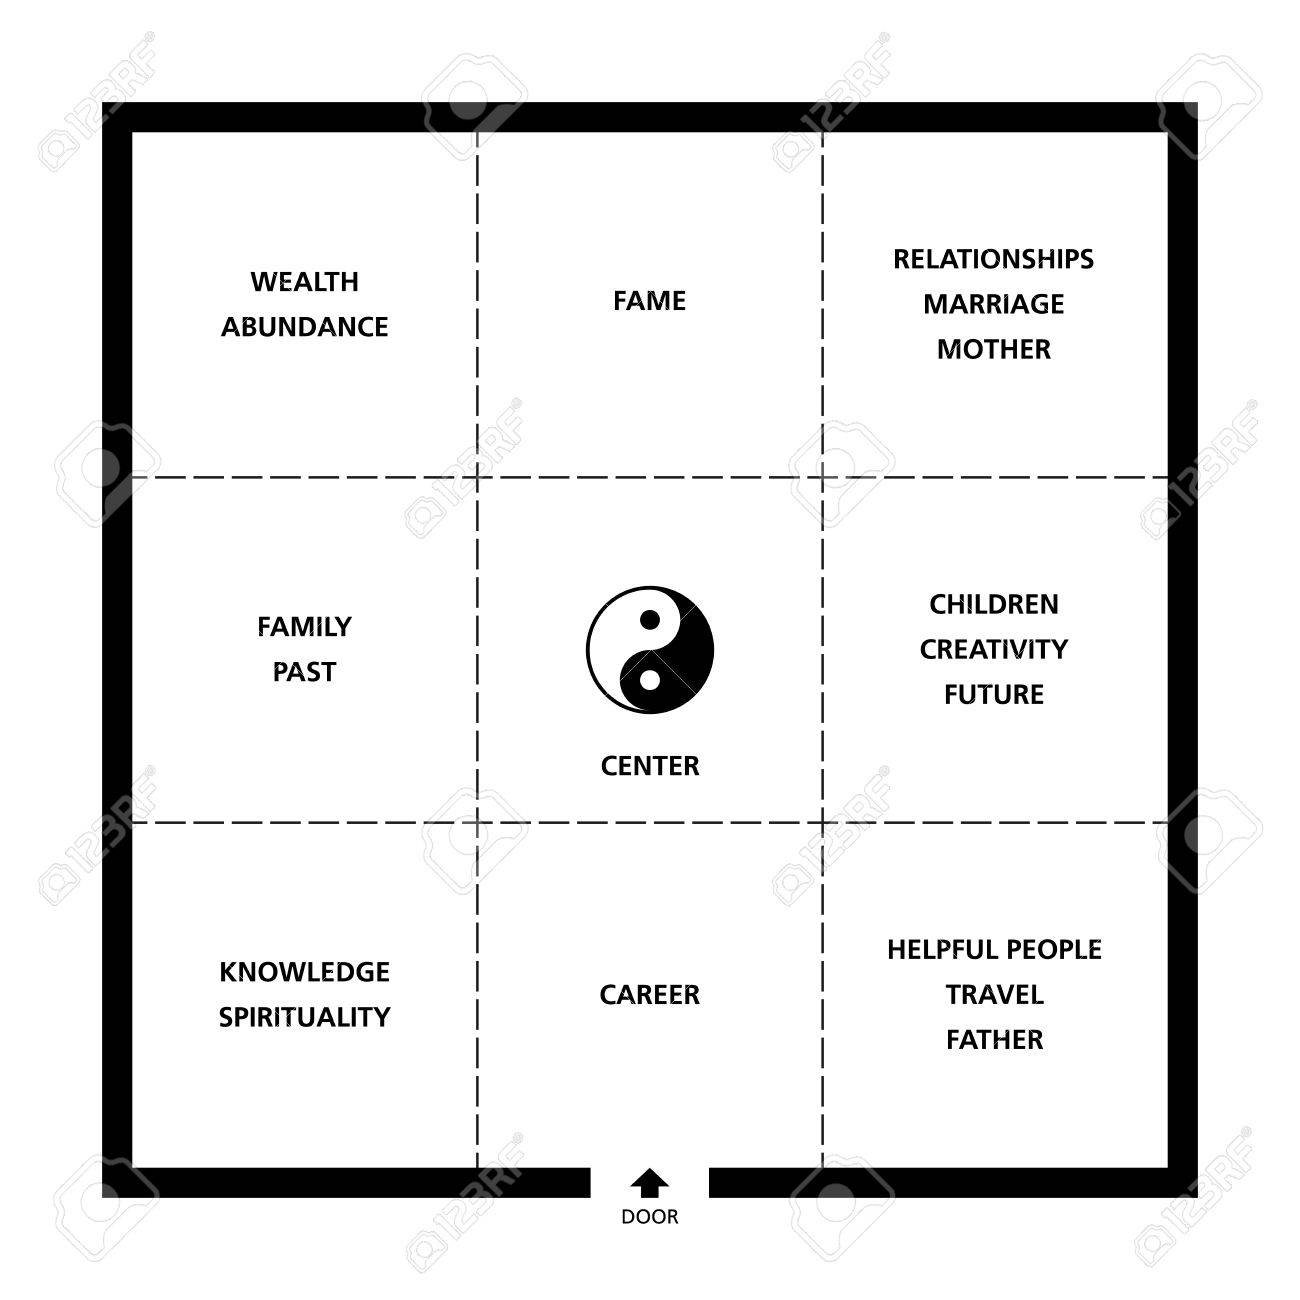 Baguas Feng Shui square room classification. Exemplary ideal room with door, nine fields and a Yin Yang symbol. Abstract black and white illustration. - 48052923